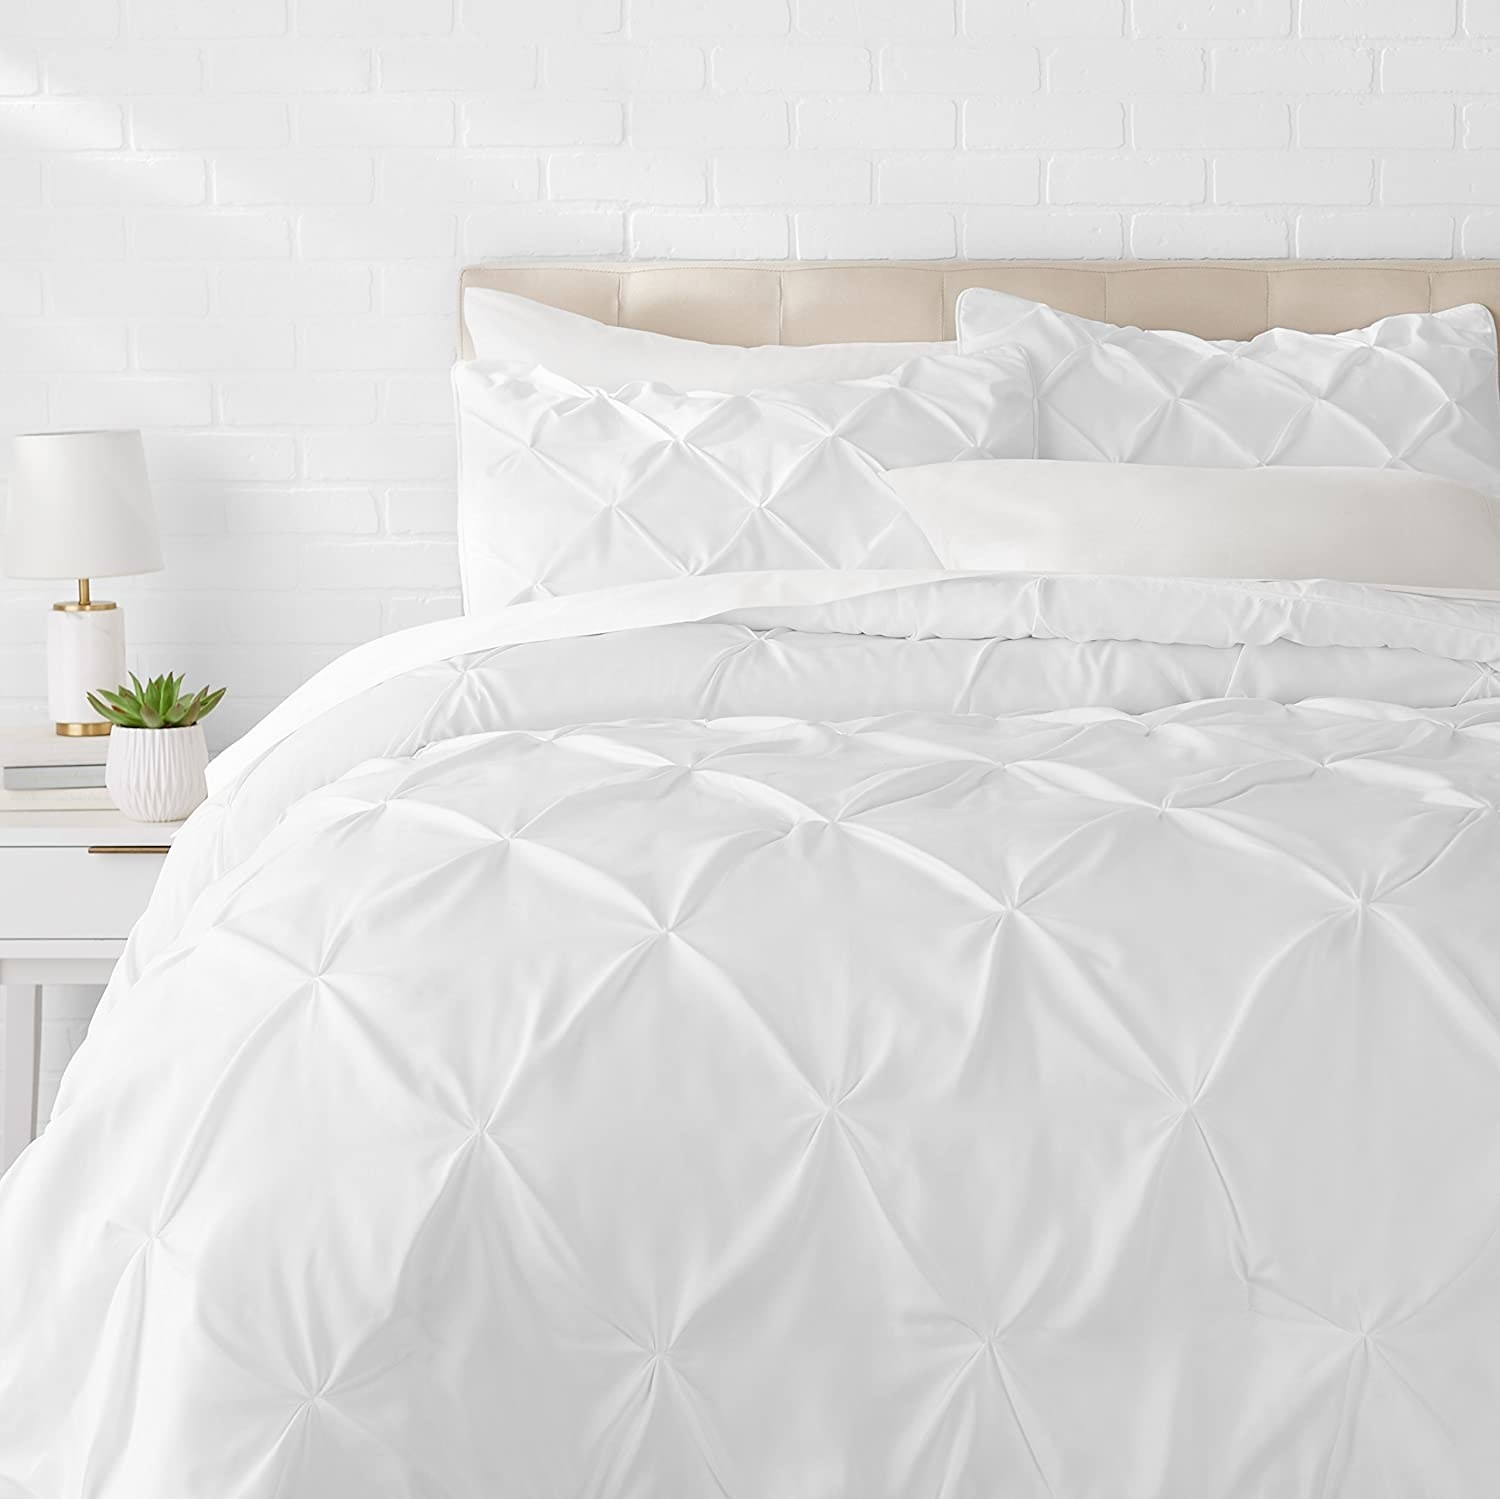 A bed with the pleated comforter and shams on it